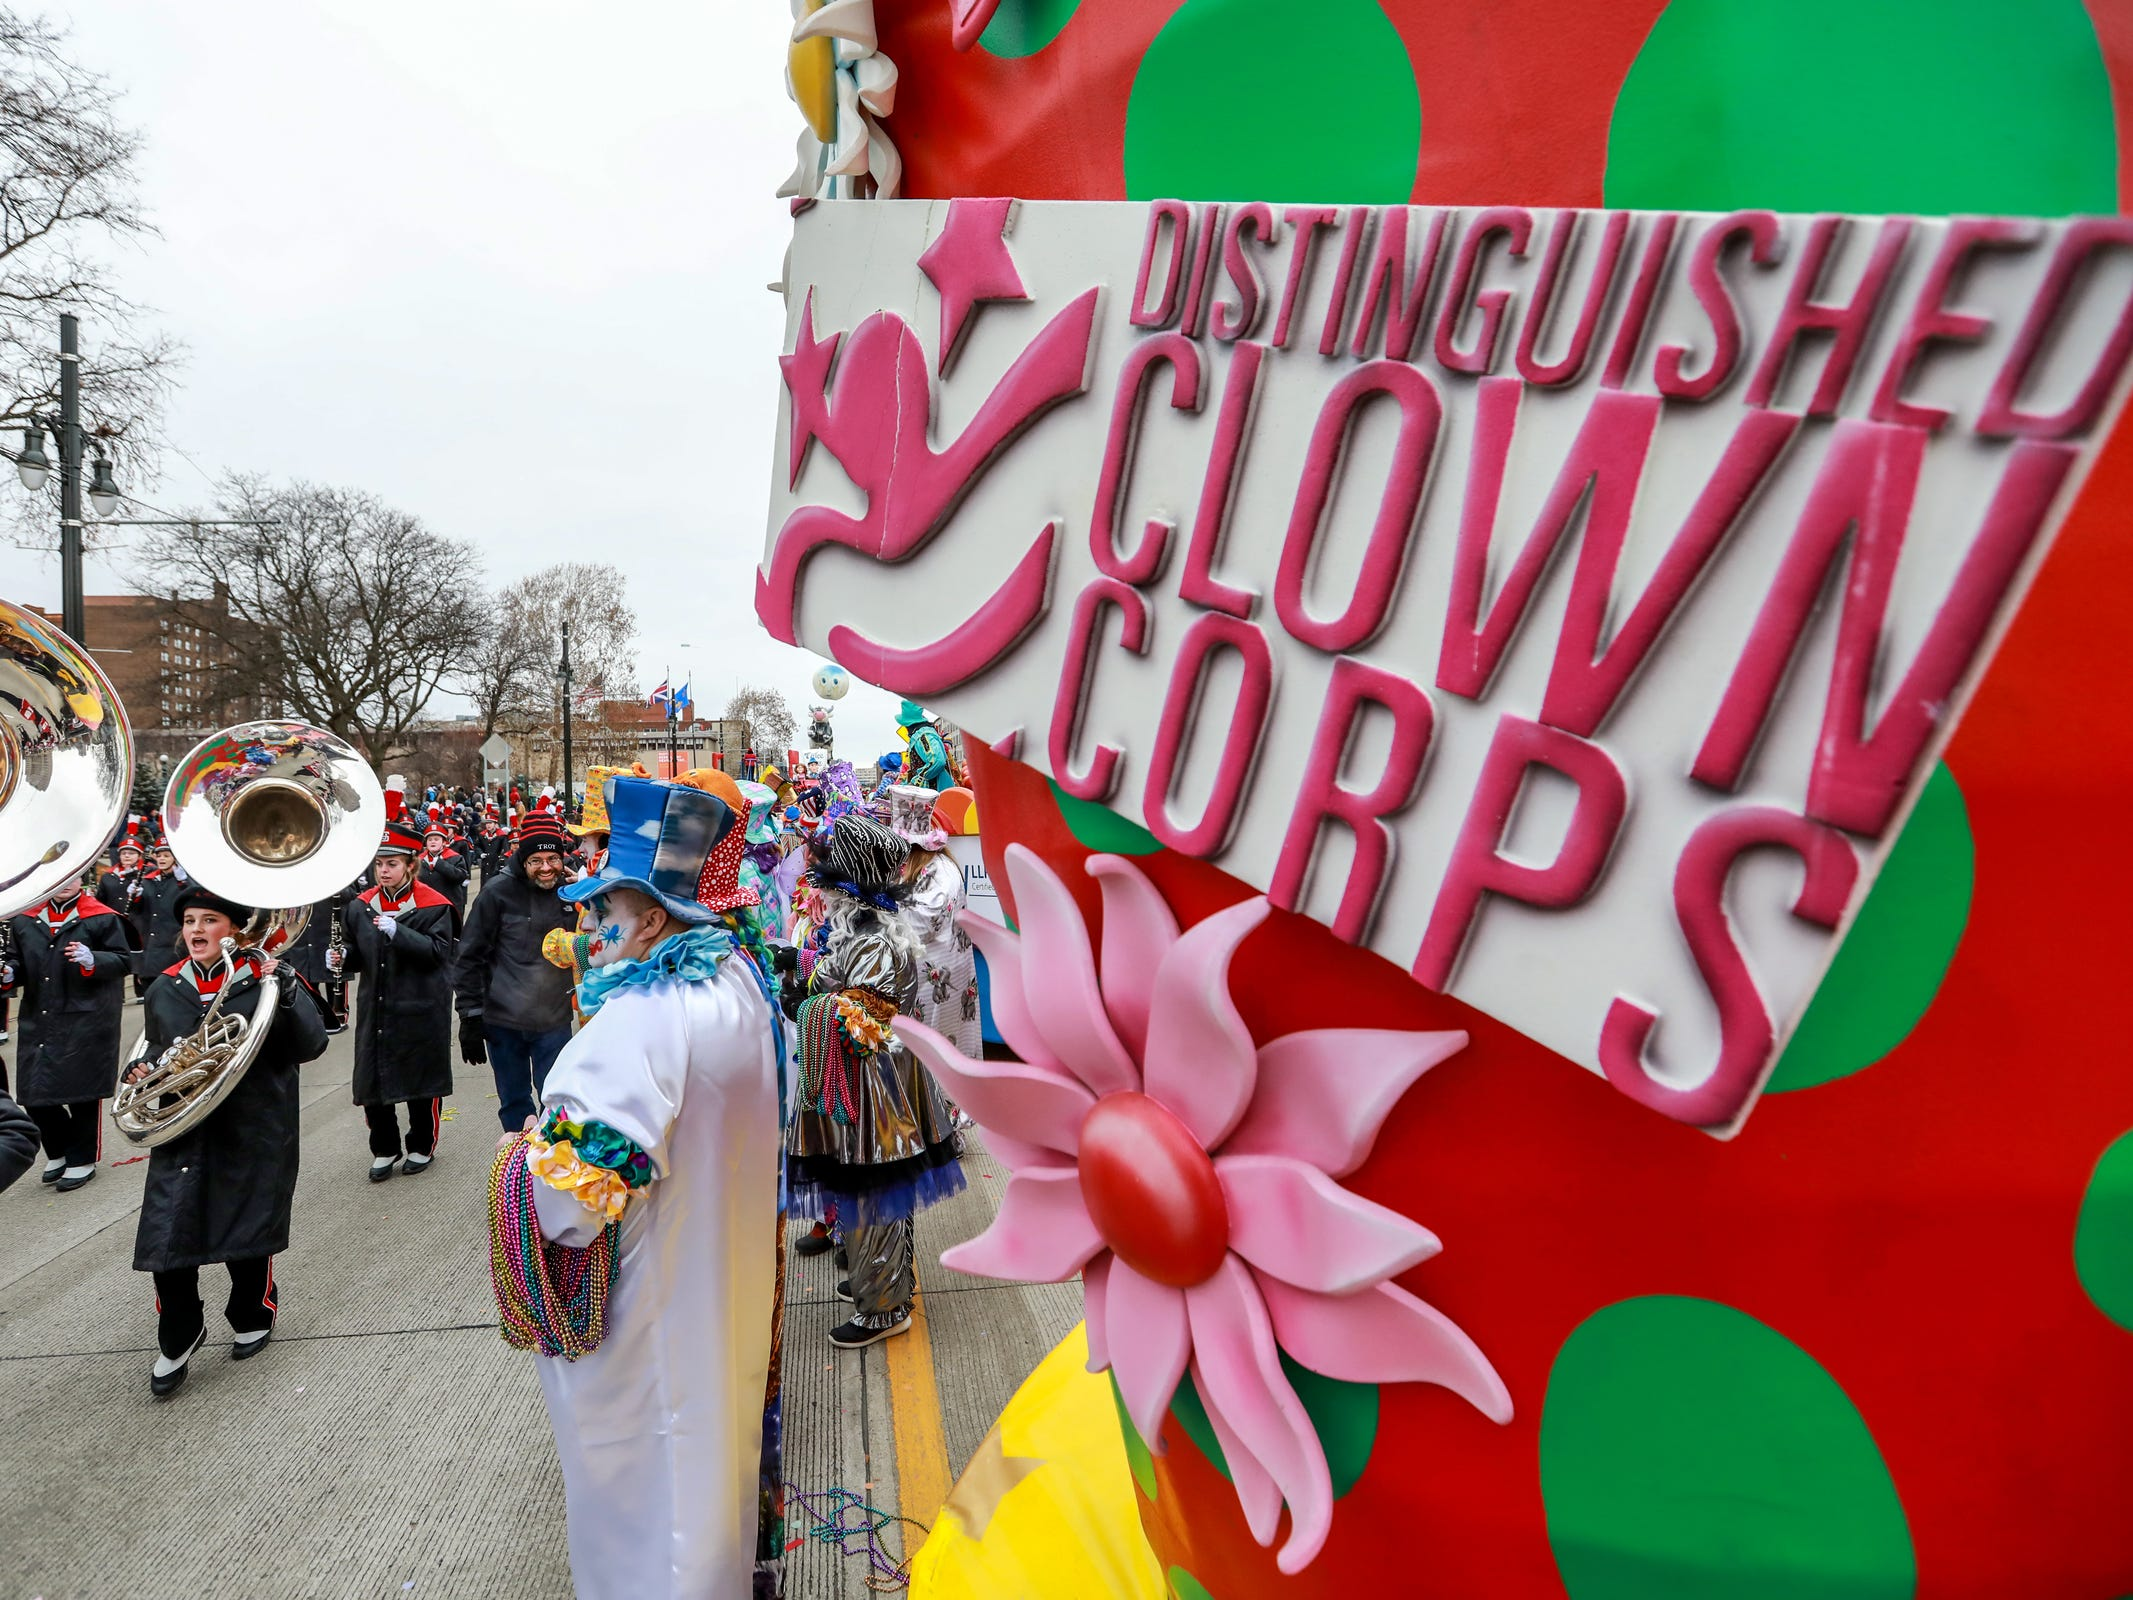 The Distinguished Clown Corps watch the parade go by and they wait until their time comes to join in, during America's Thanksgiving Parade in Detroit on Thursday, Nov. 22, 2018.